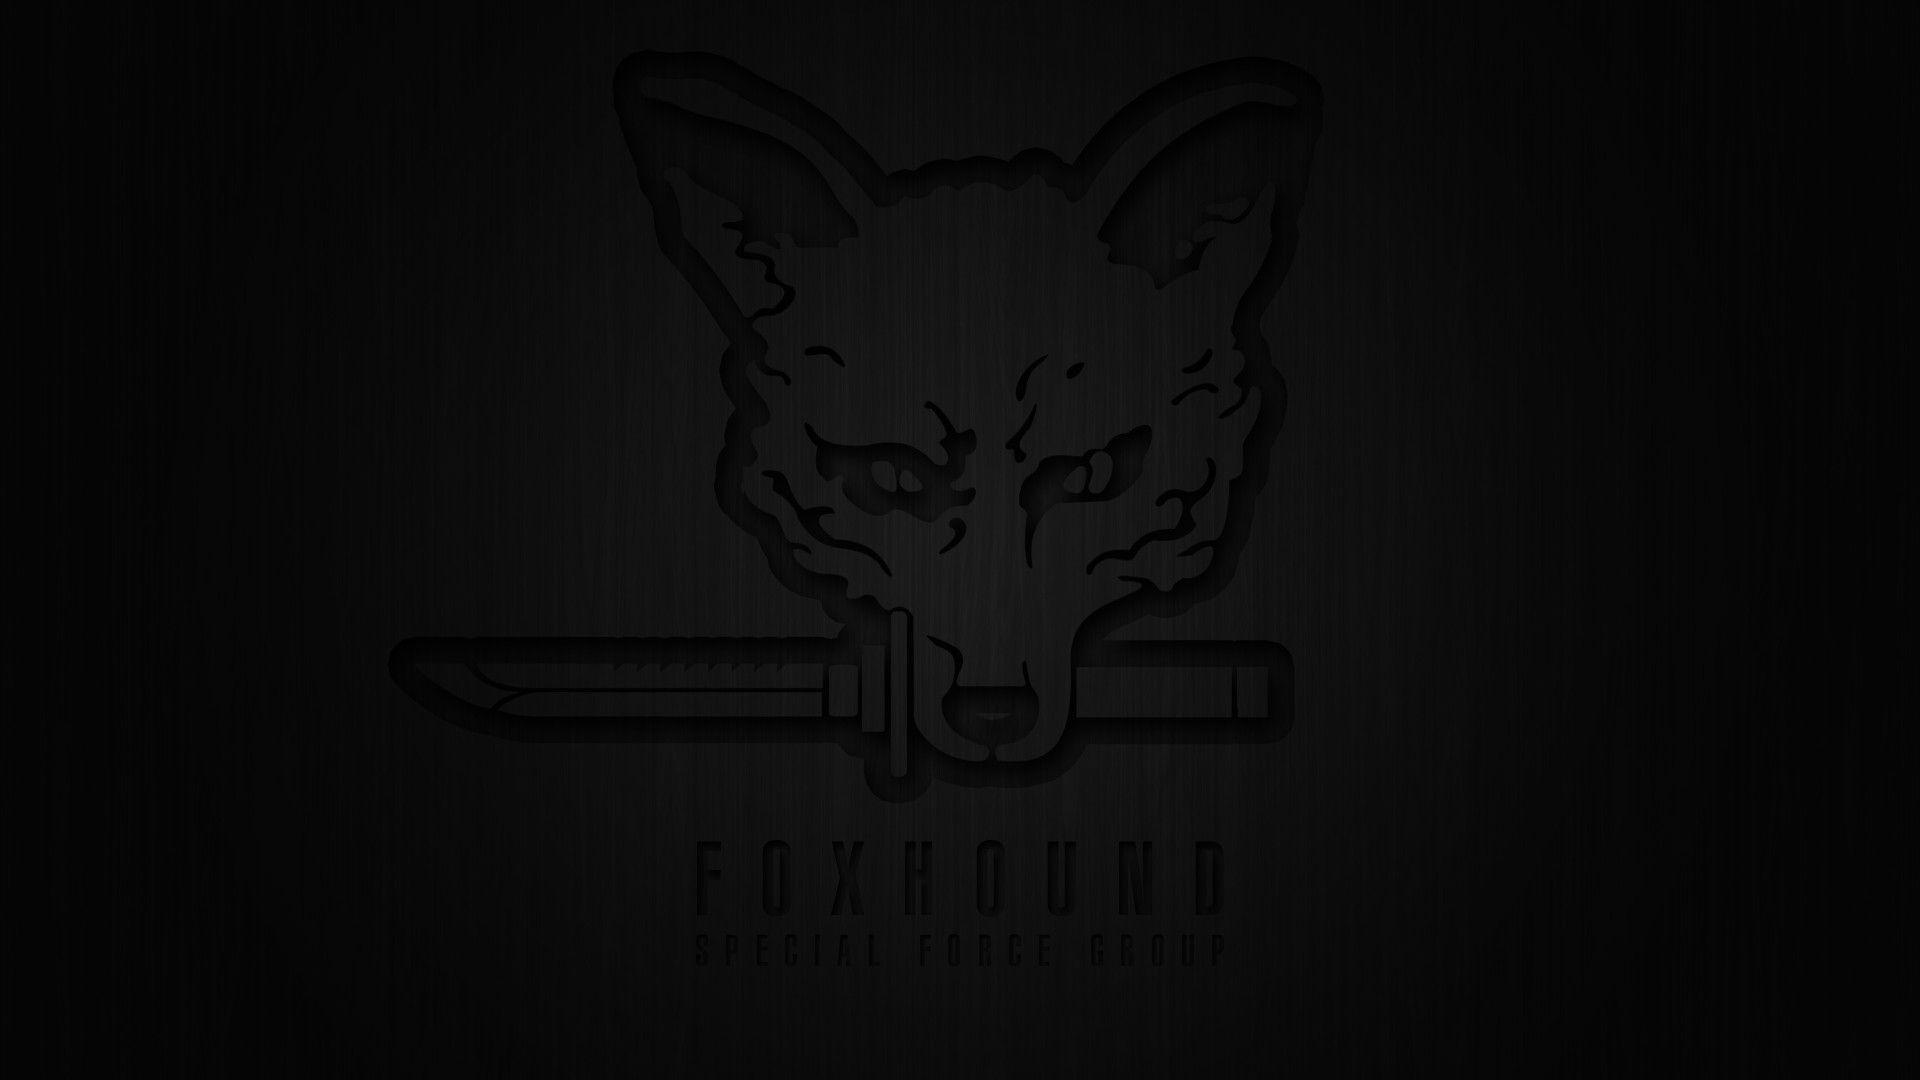 Foxhound Wallpaper 1920x1080 - Viewing Gallery